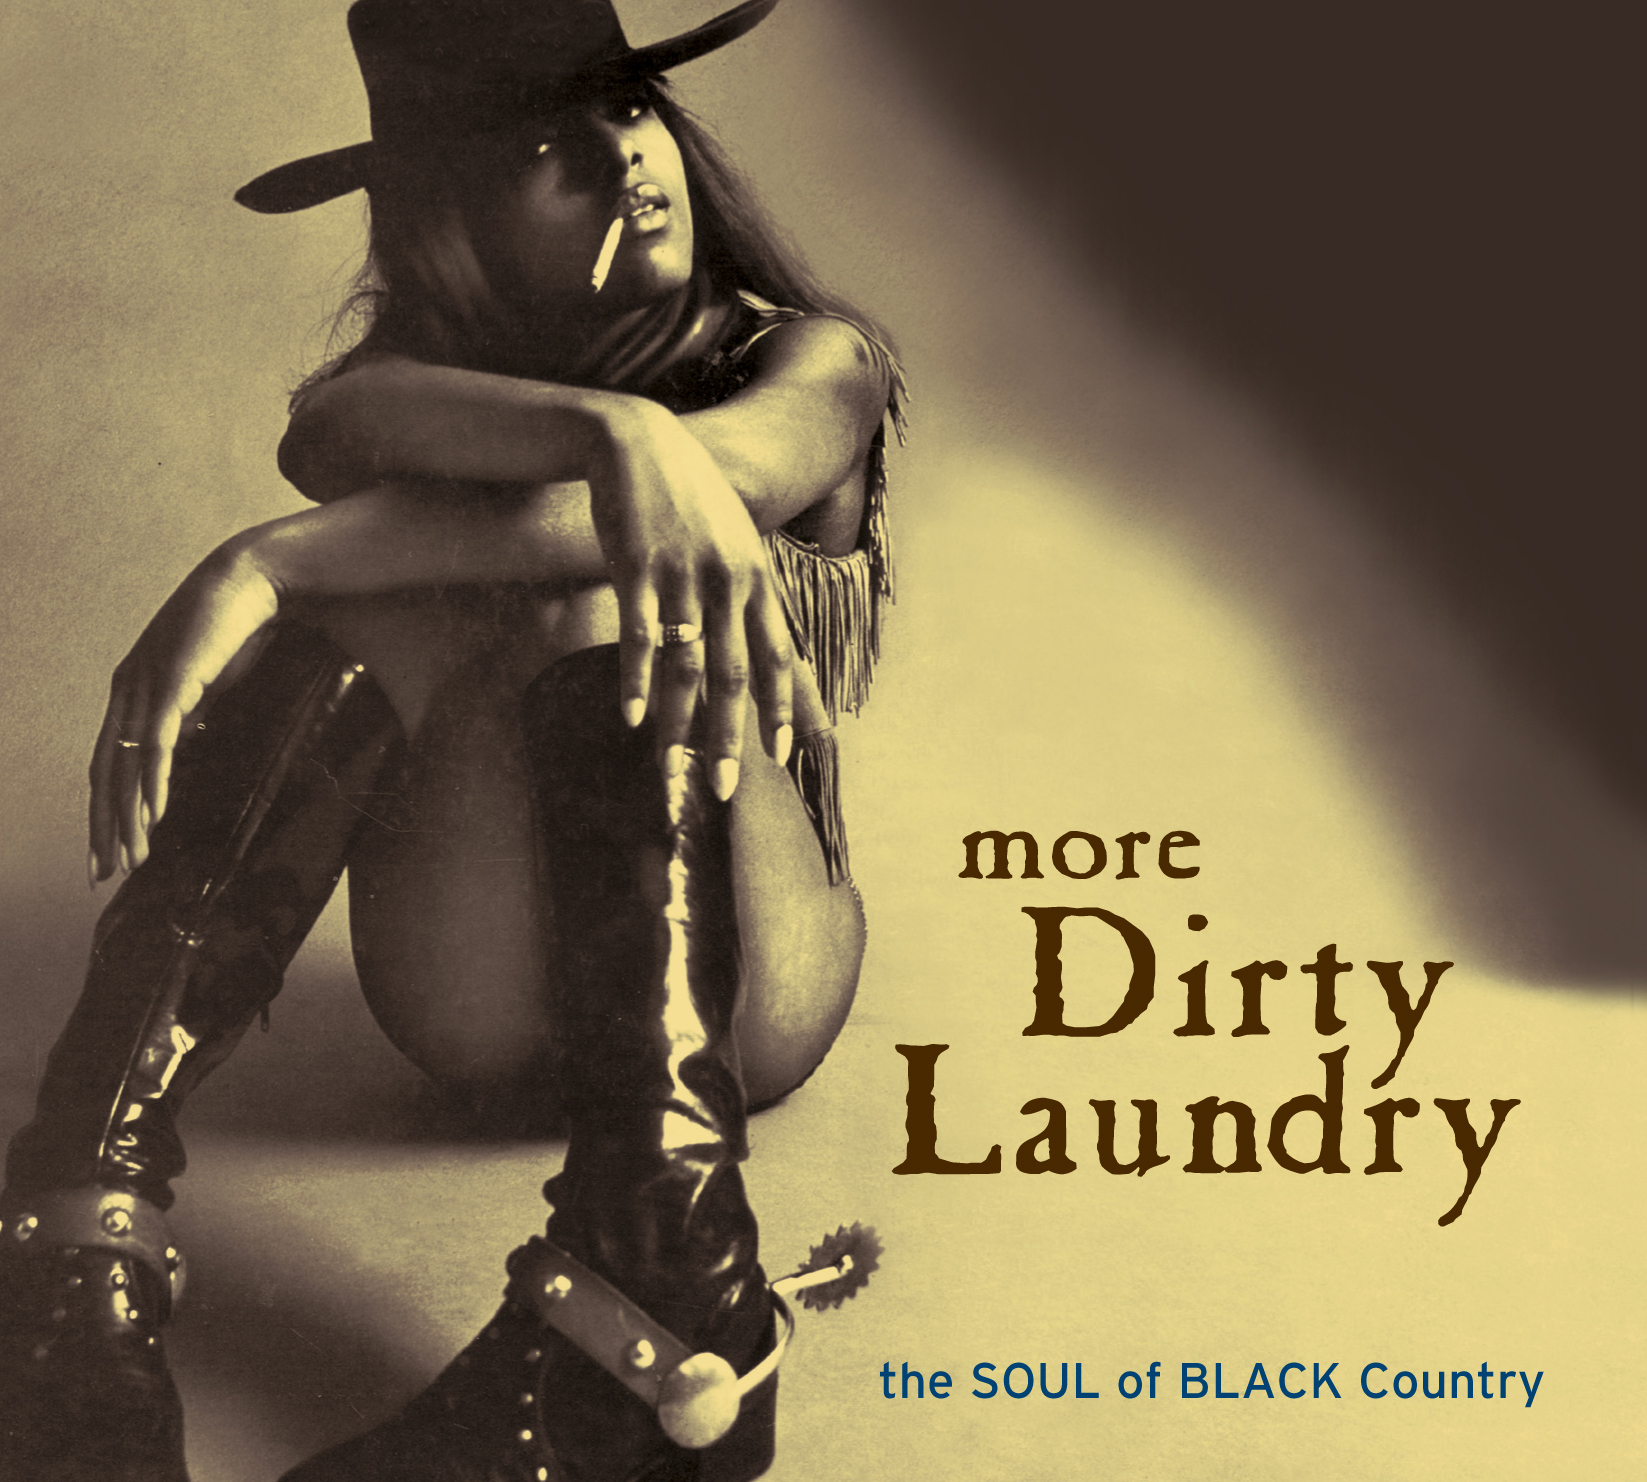 More Dirty Laundry - The Soul of Black Country